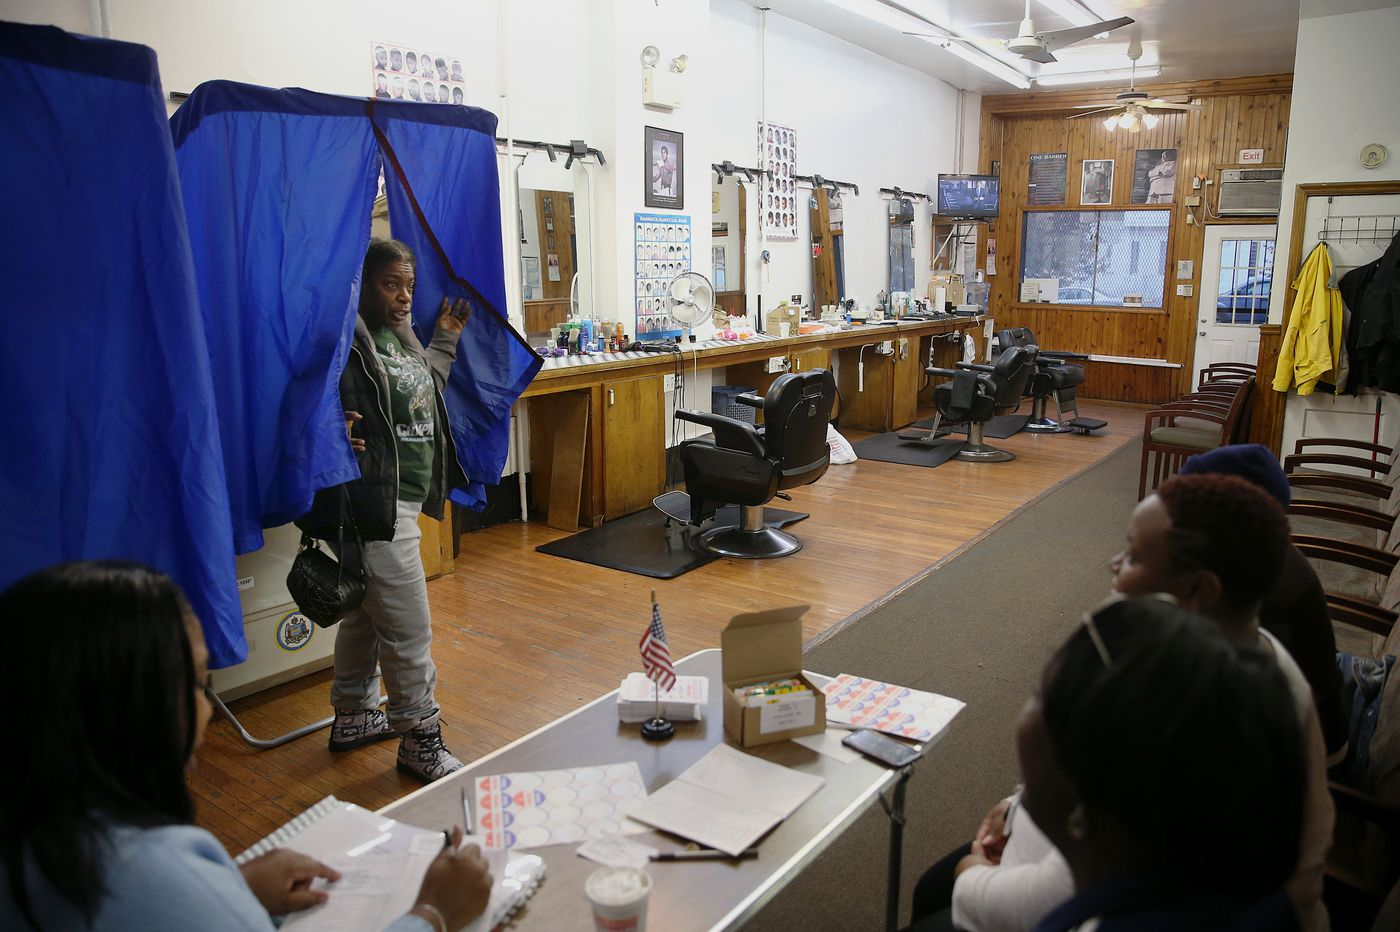 Philly voters will consider borrowing $185 million for buildings, streets, and parks in Tuesday's election